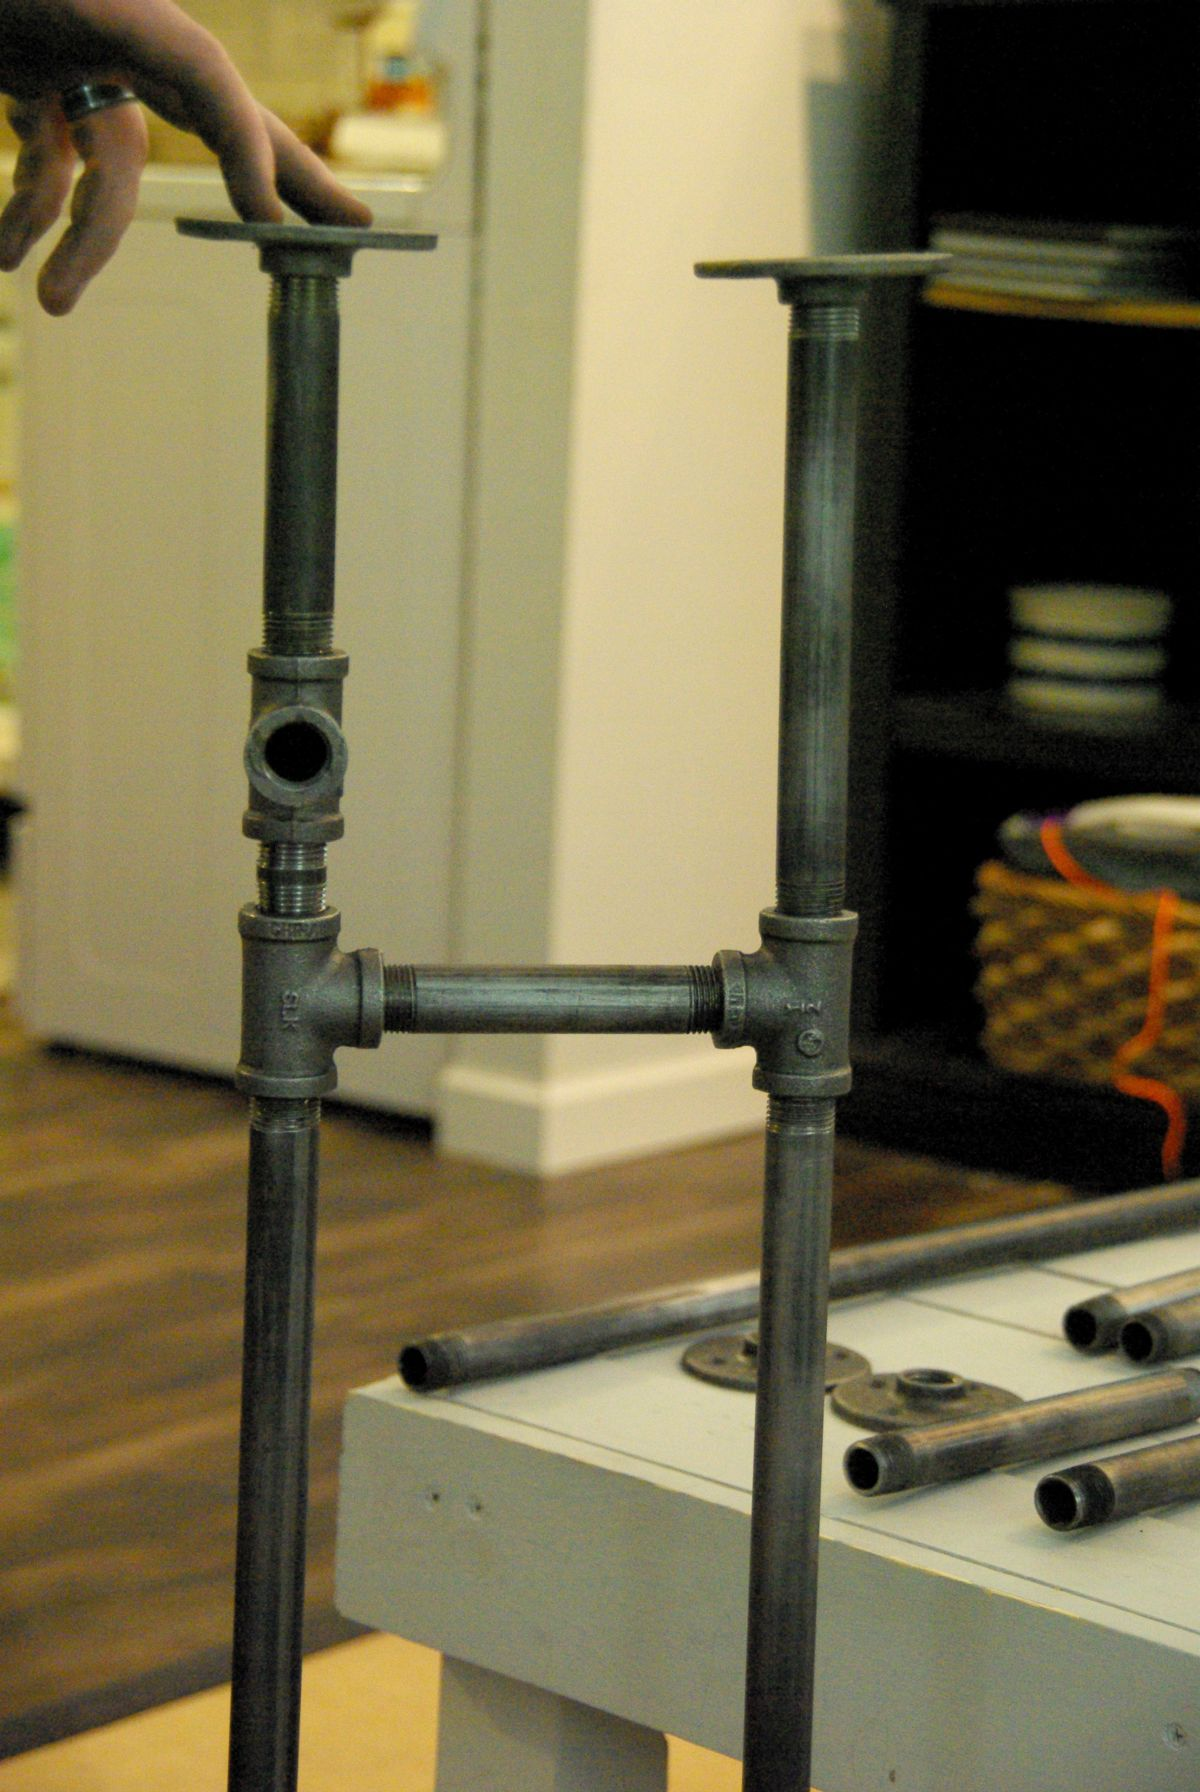 How To Build A Rustic Table Using Galvanized Pipes   Ceiling ...